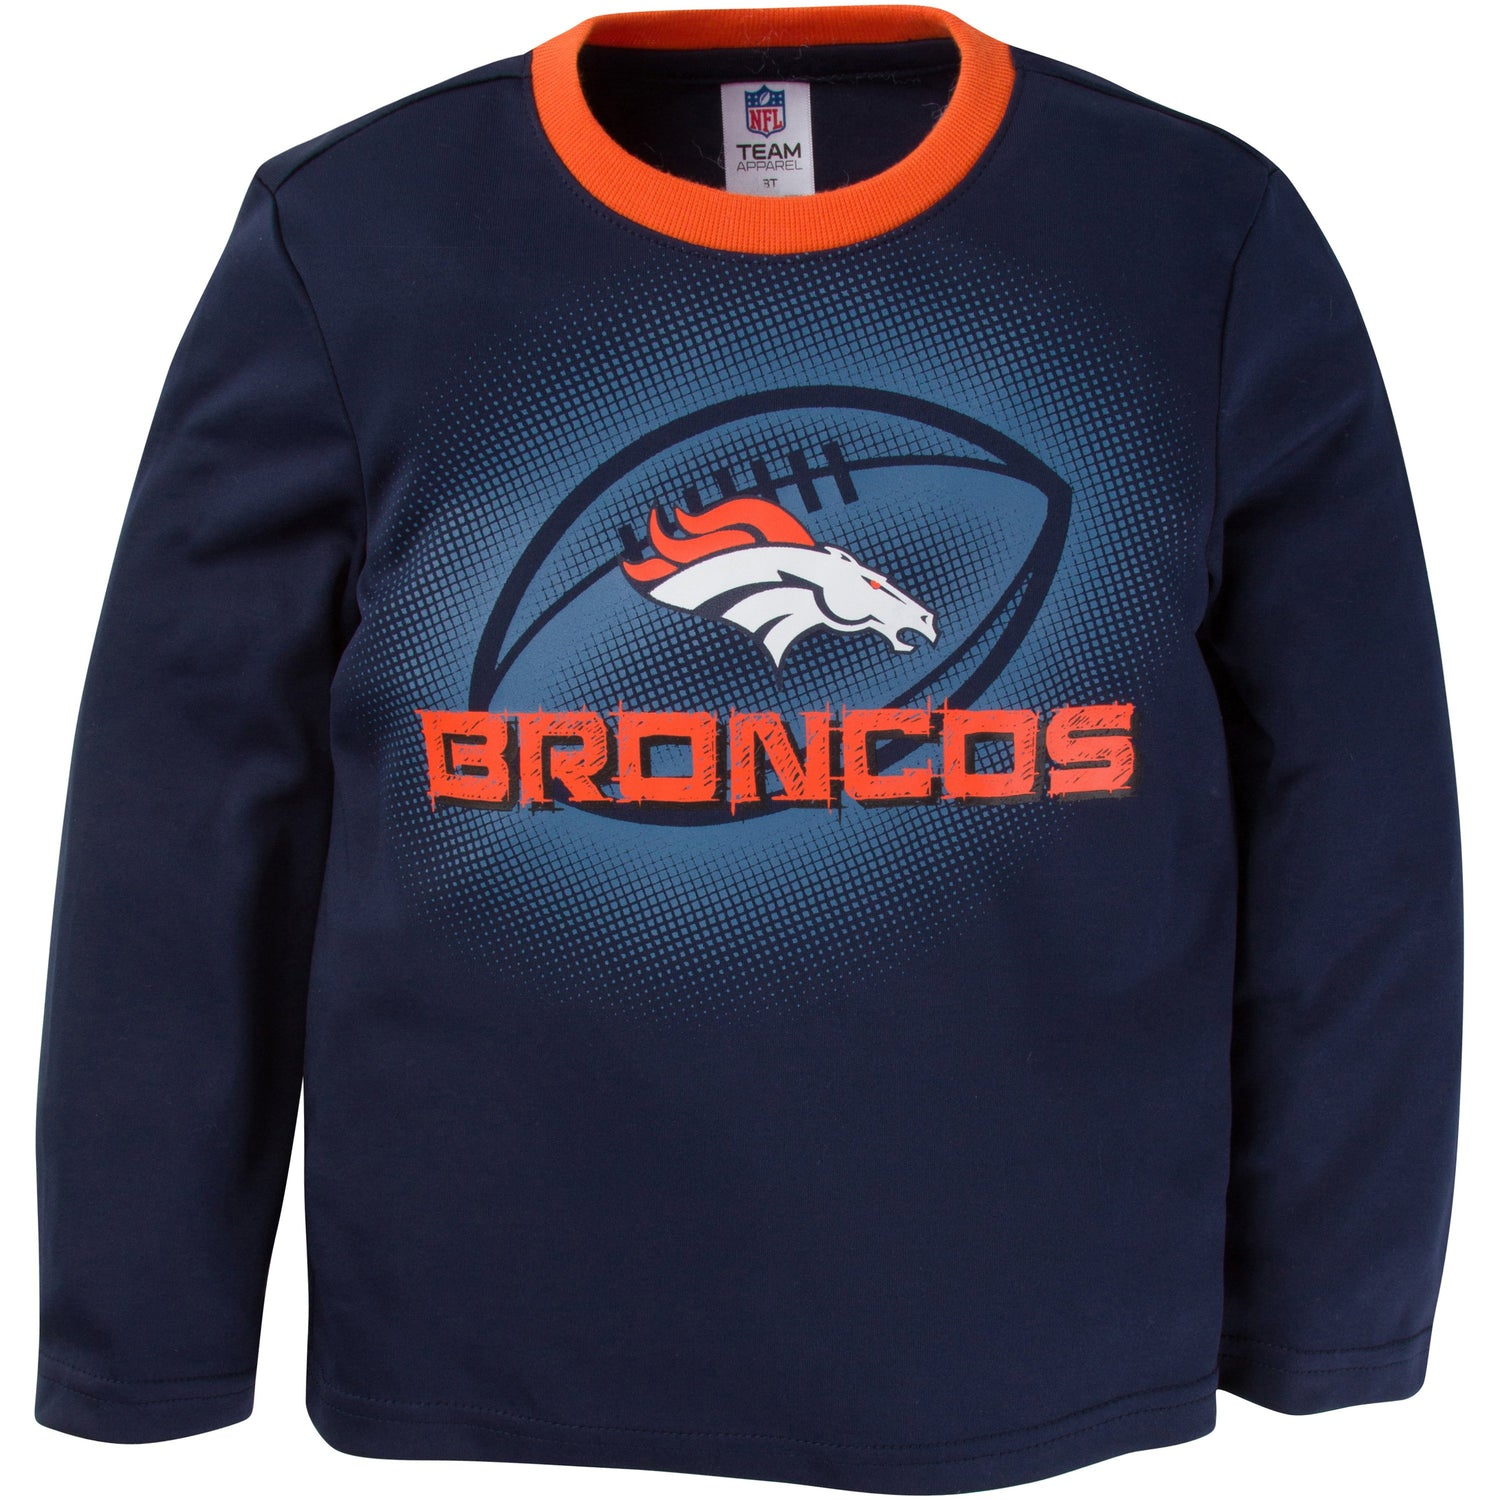 Denver Broncos Toddler Boys Long Sleeve